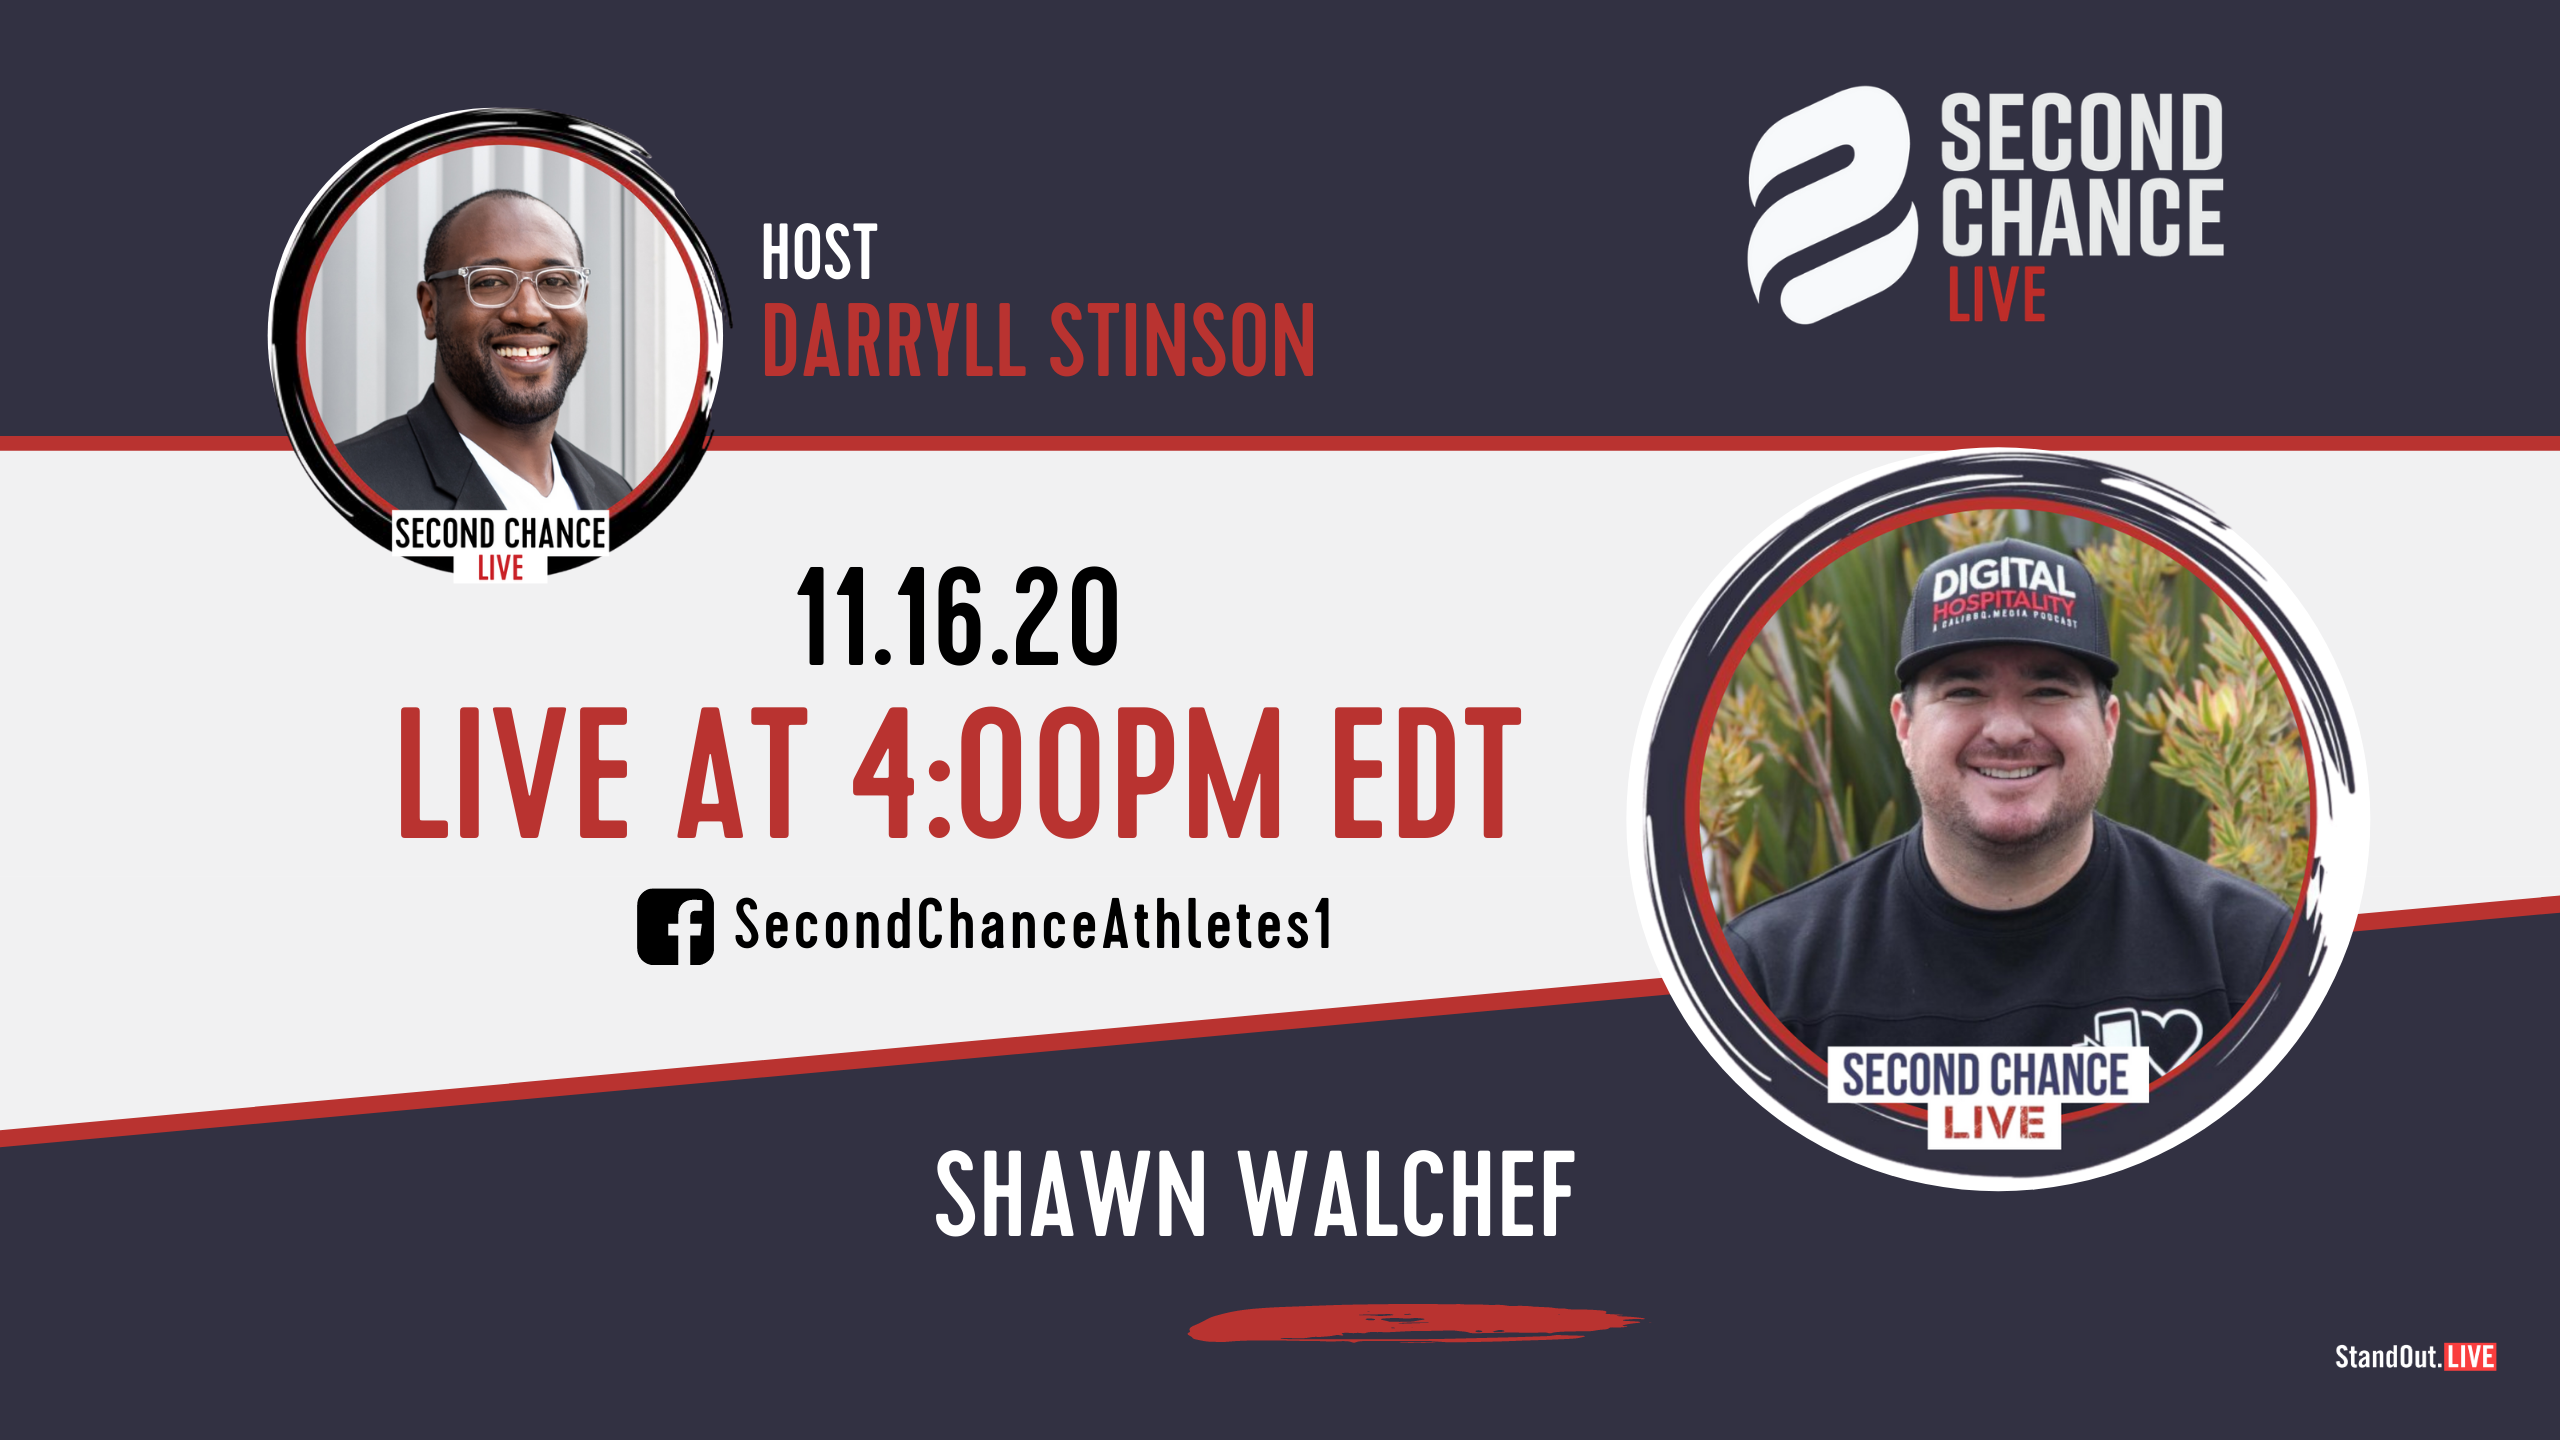 Second Chance LIVE -with Shawn Walchef